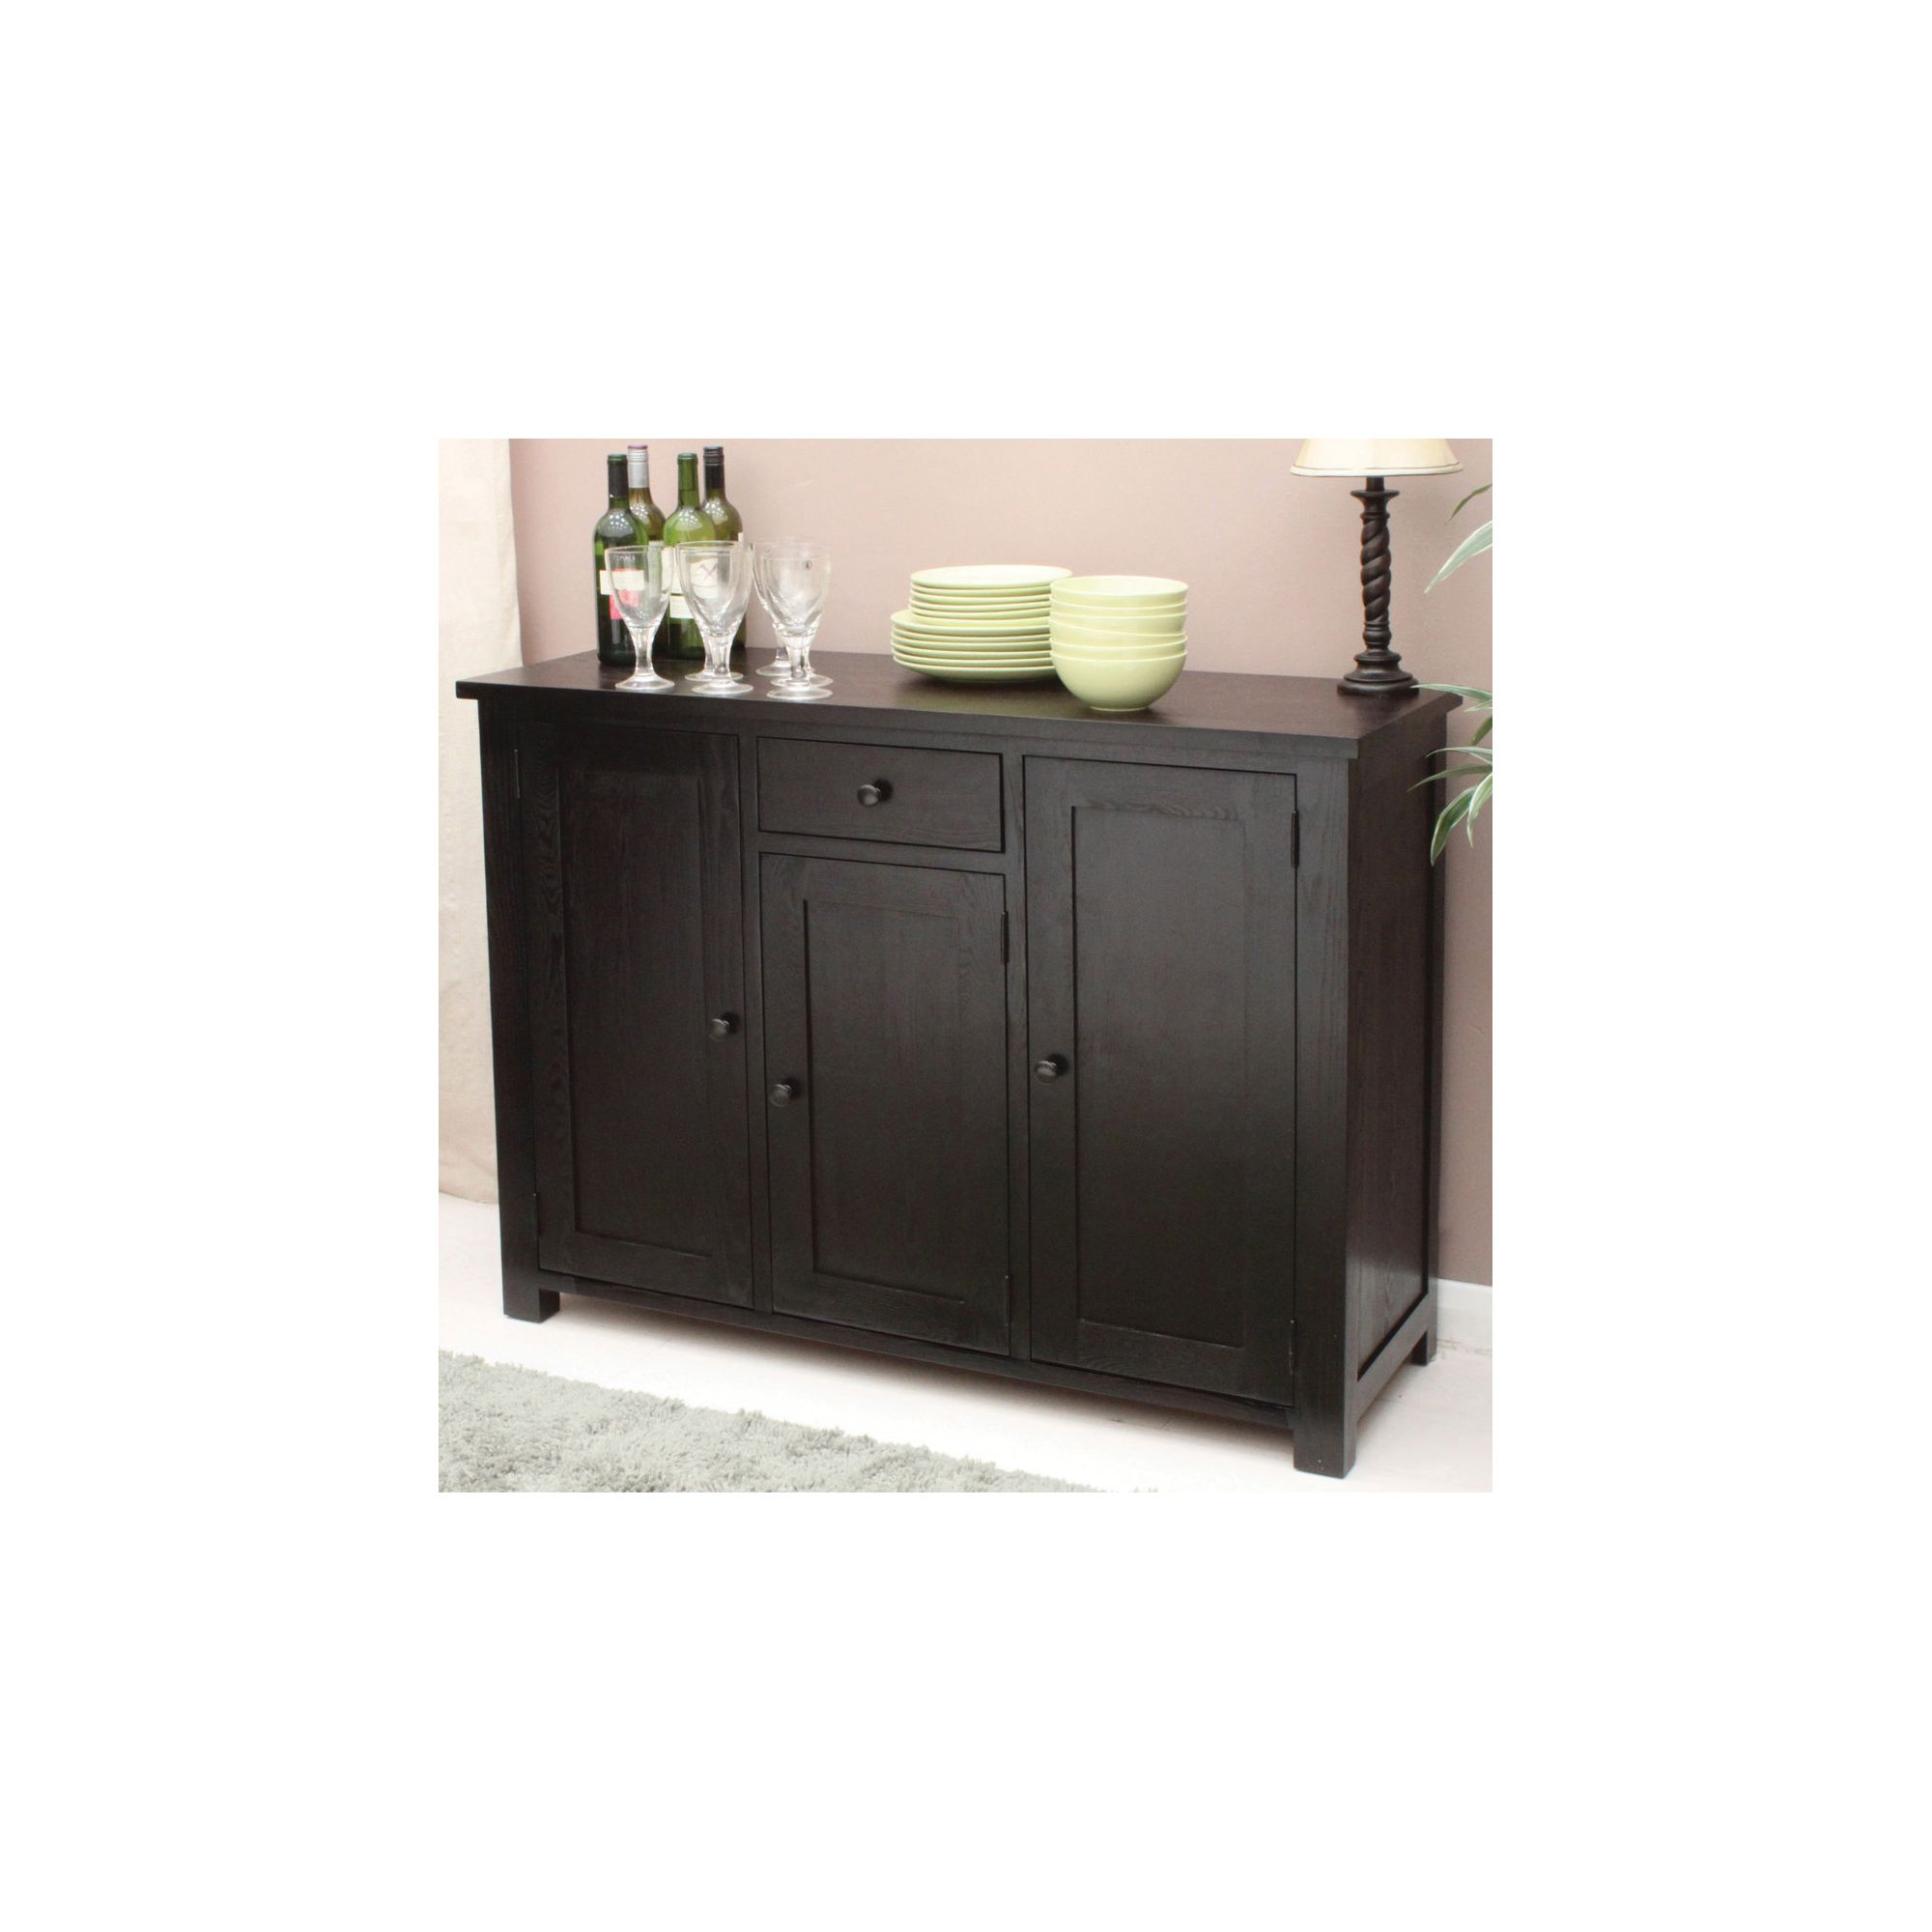 Baumhaus Kudos 3 Door 1 Drawer Sideboard at Tesco Direct